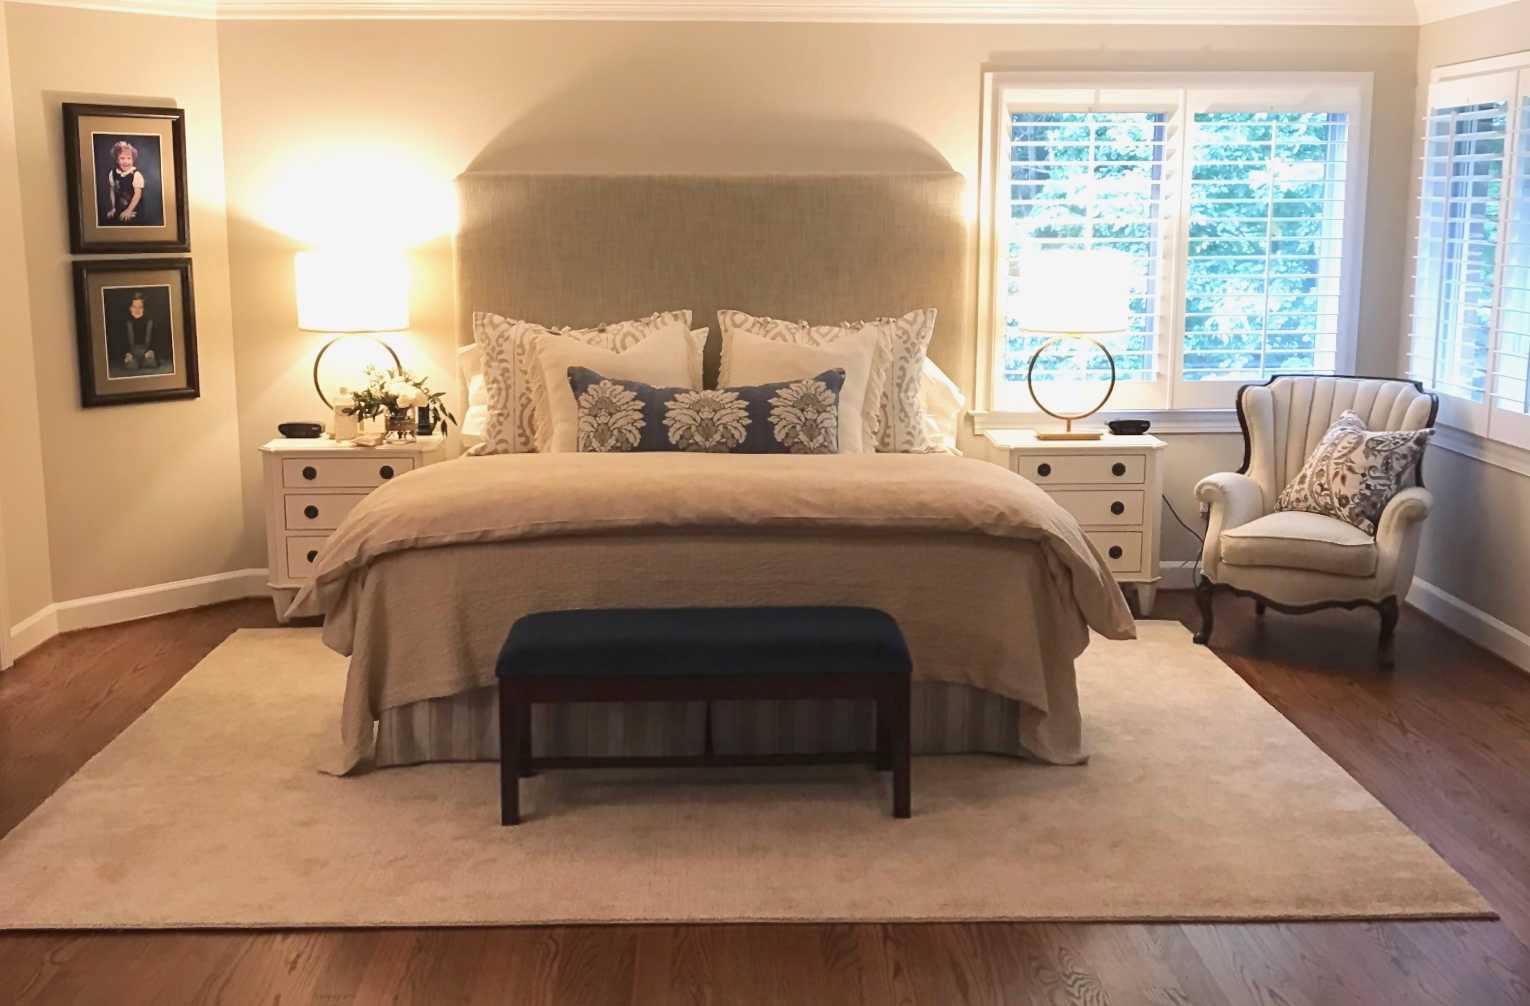 "Client ""Turning-down for an Update"" in McLean, VA, the after. Turndown Service and Design by Valerianne of DC."